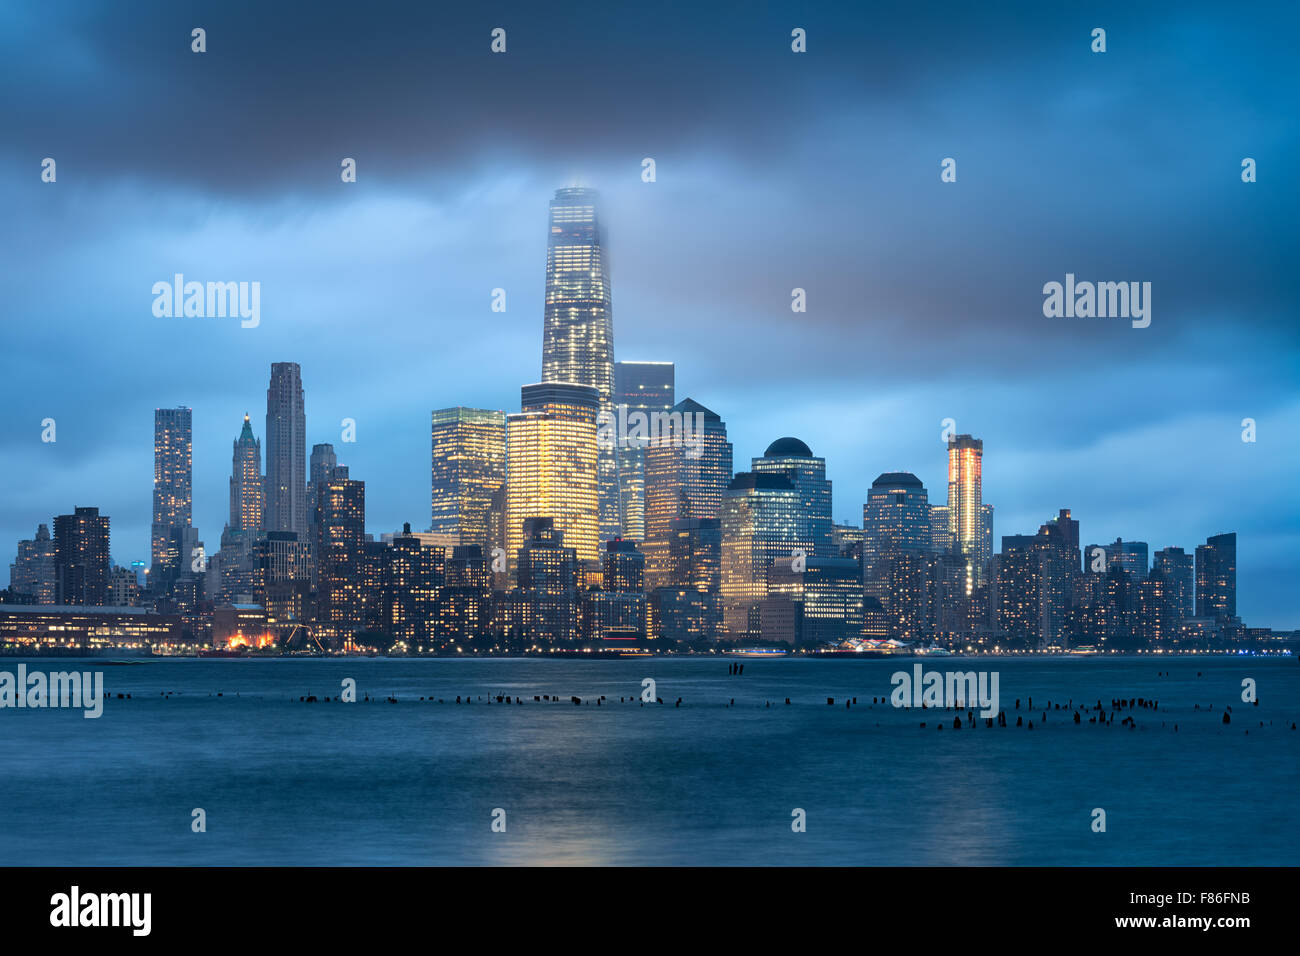 Lower Manhattan and Financial District illuminated skyscrapers with storm clouds, New York City. World Trade Center - Stock Image